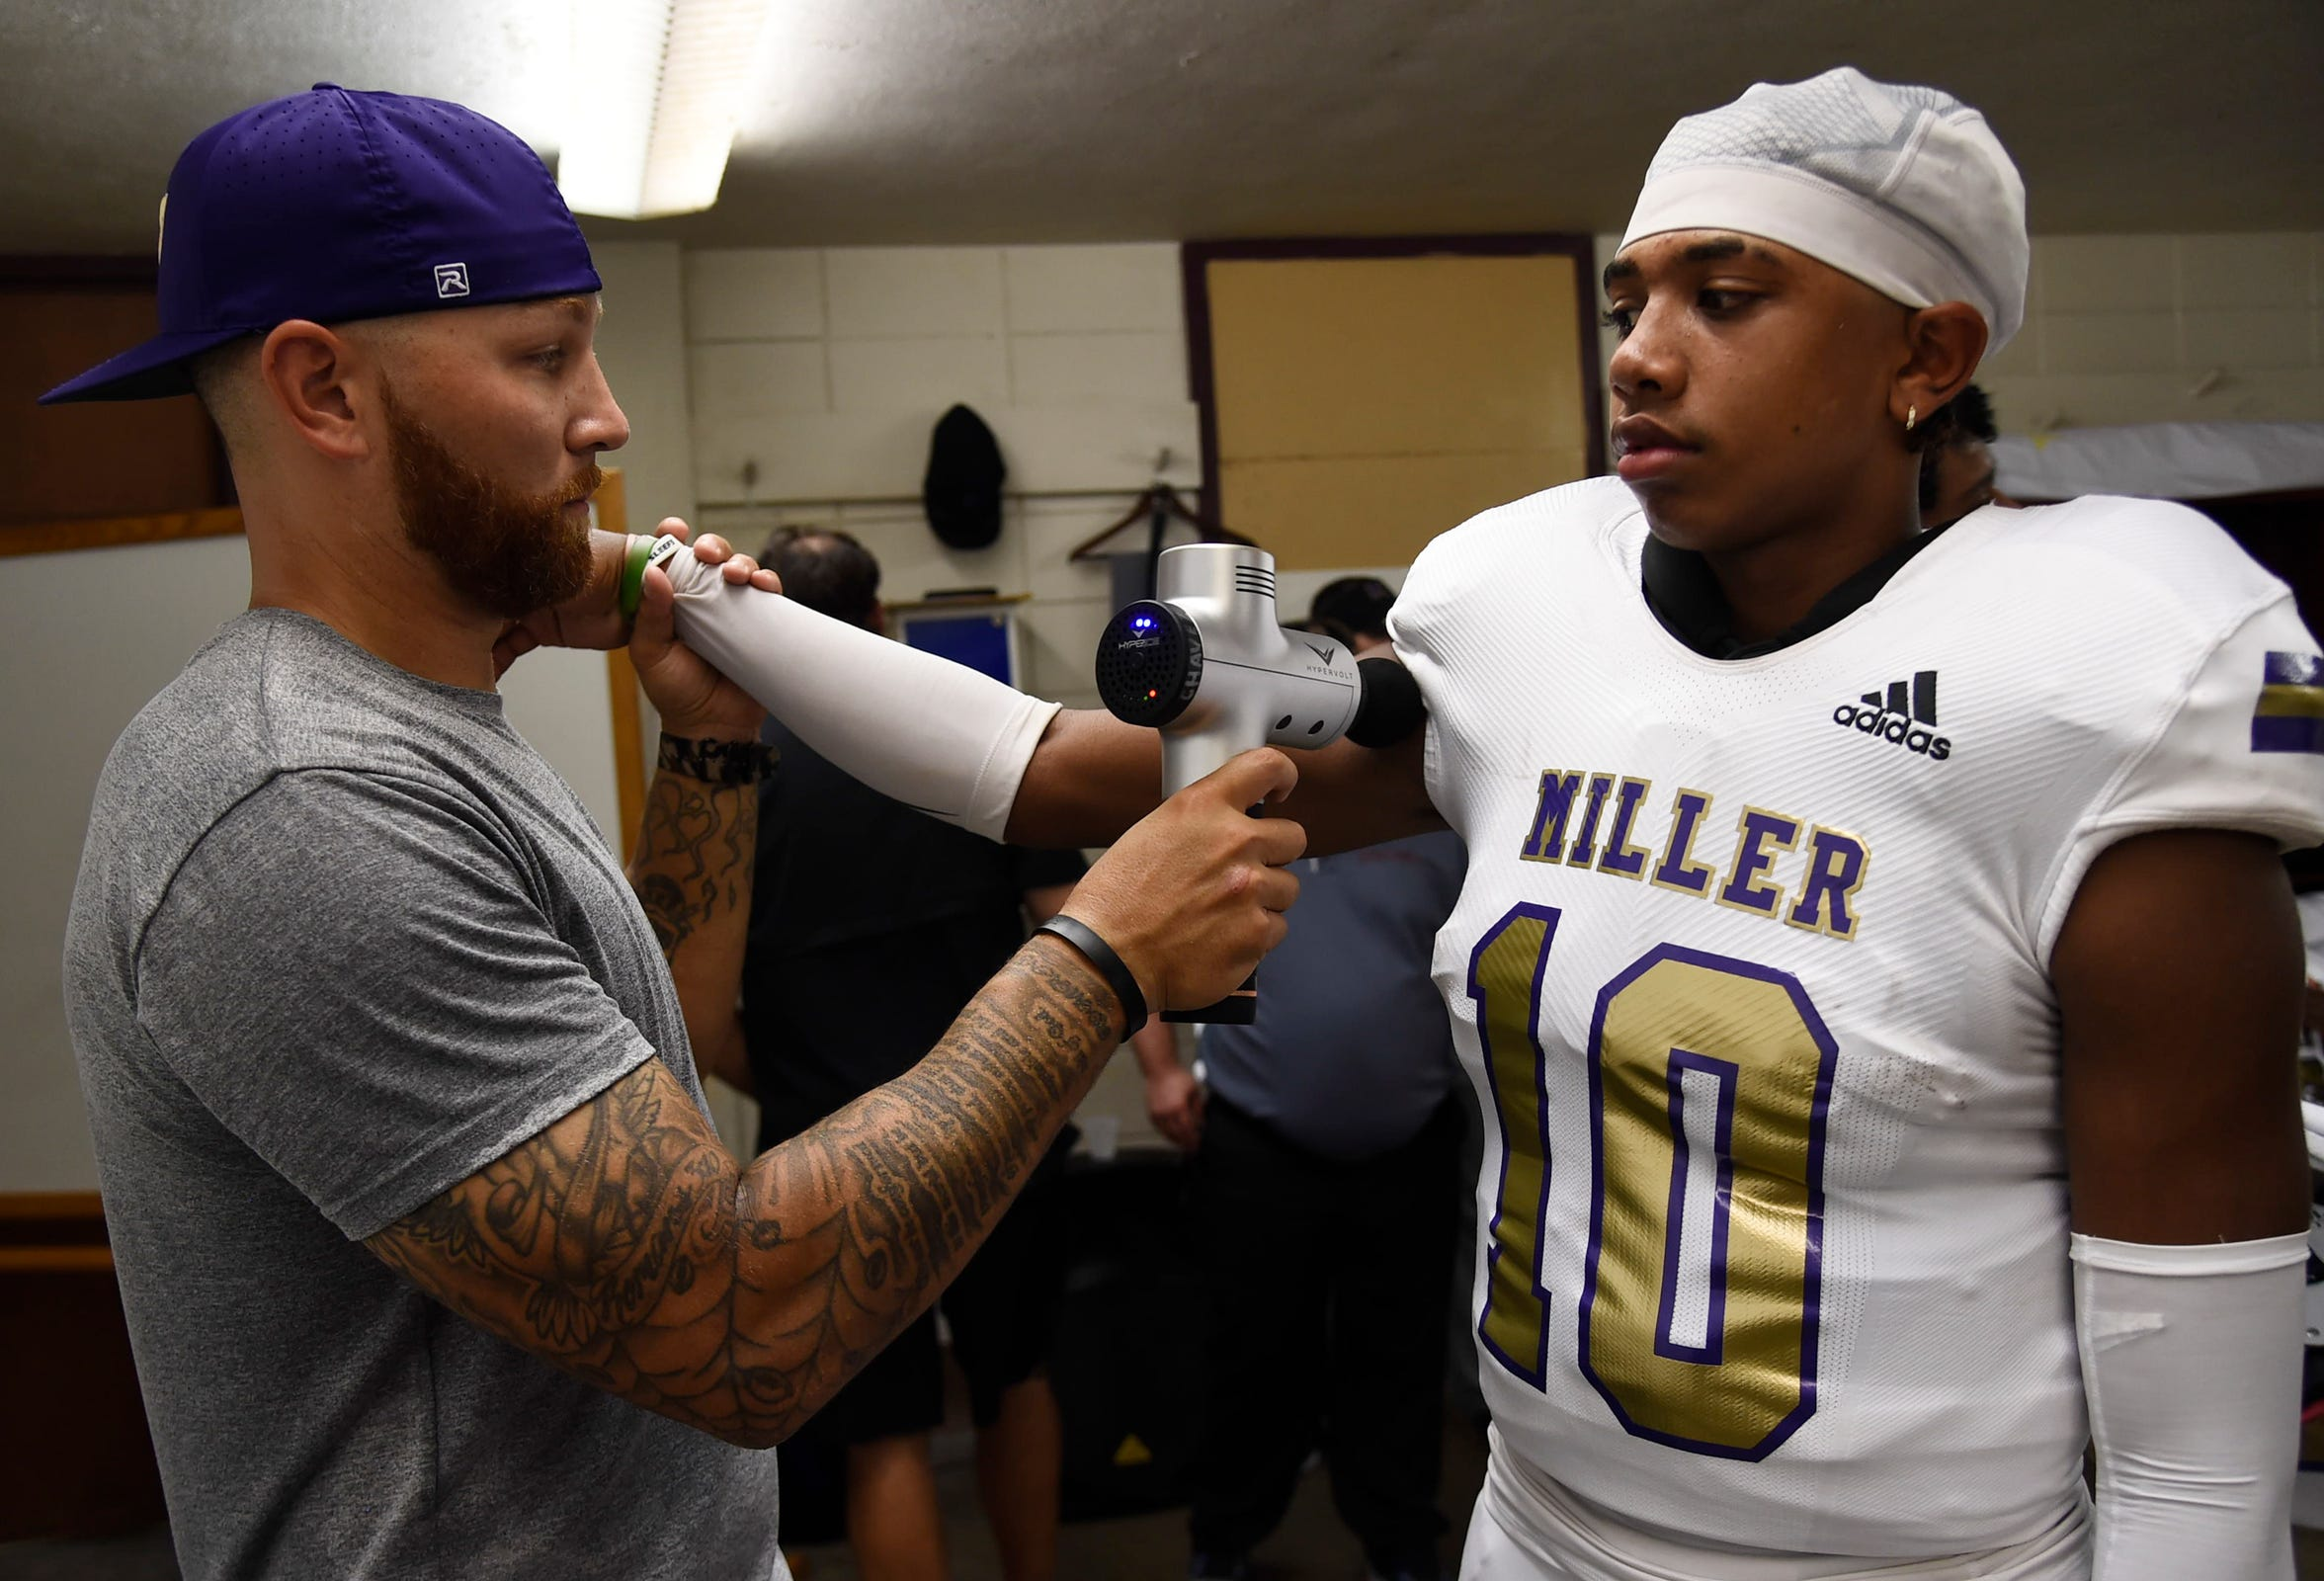 Miller's Passing Game Coordinator Bradly Chavez uses a massage tool for Andrew Body before their game against Sinton, Friday, Sept. 6, 2019, in Sinton. Miller won, 51-9.